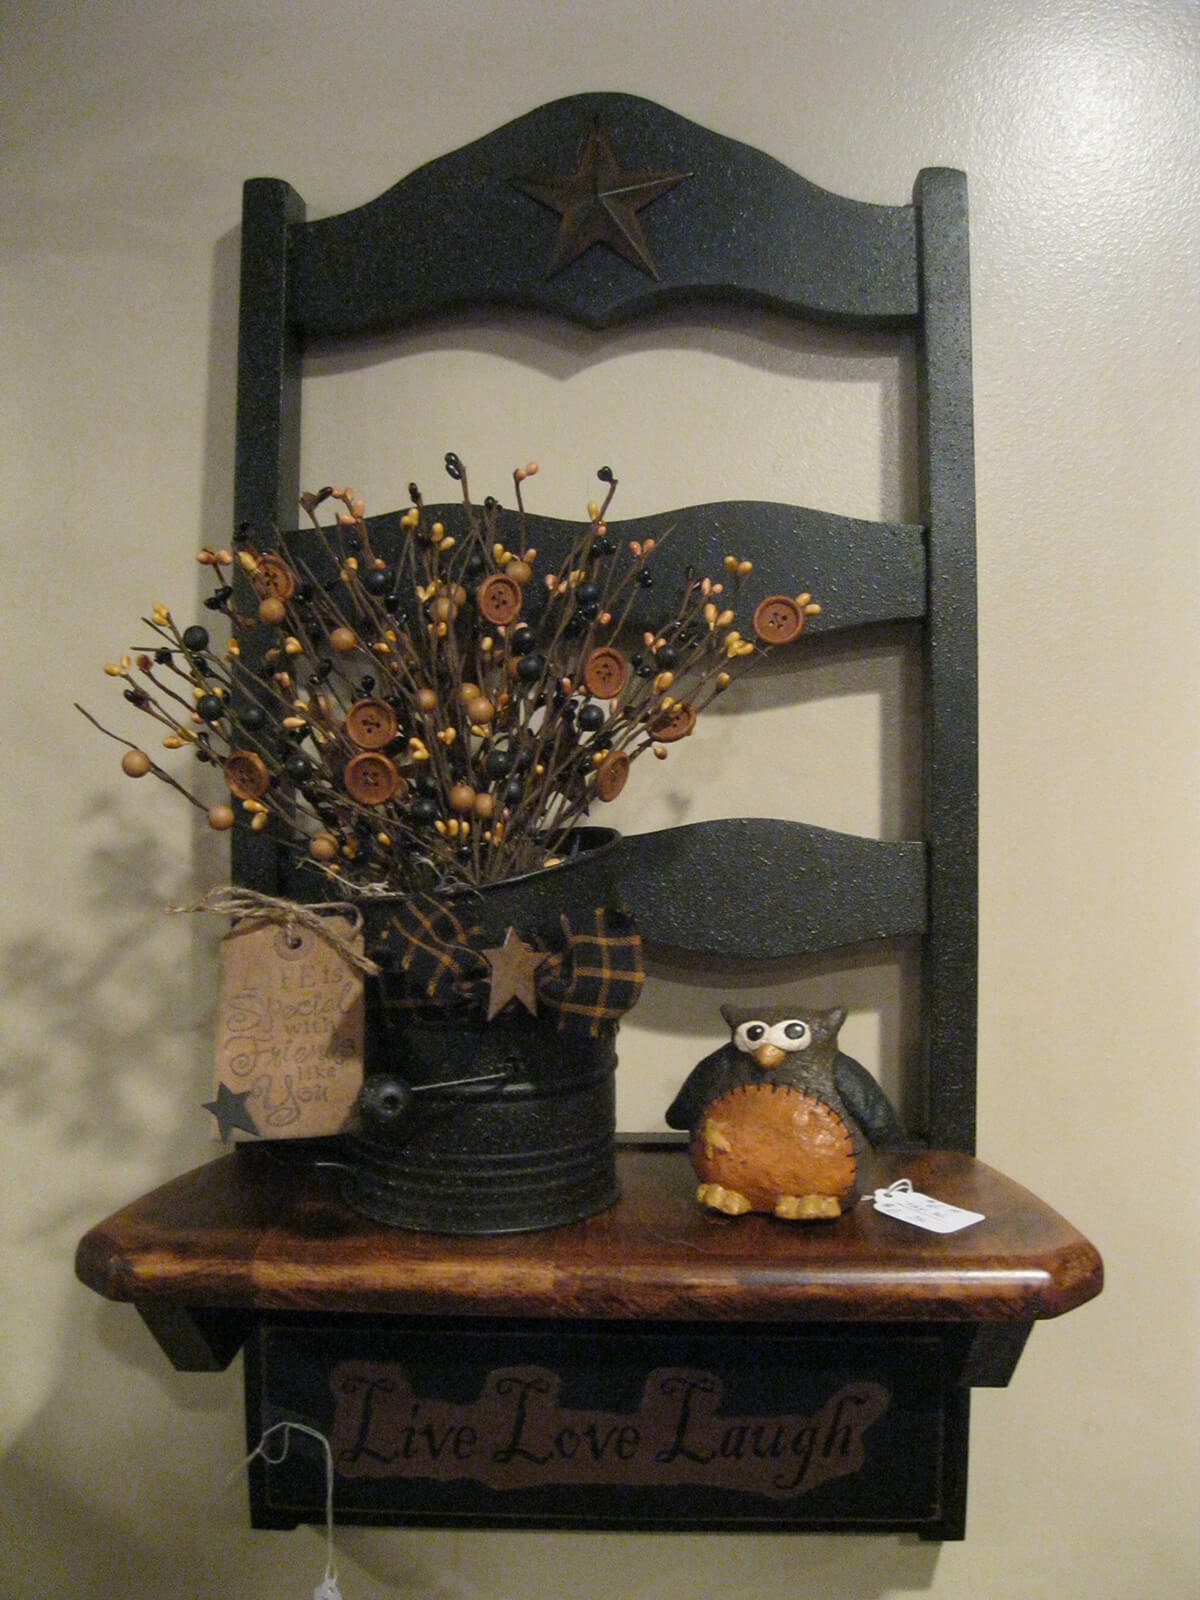 A Mantle with Flowers and an Owl